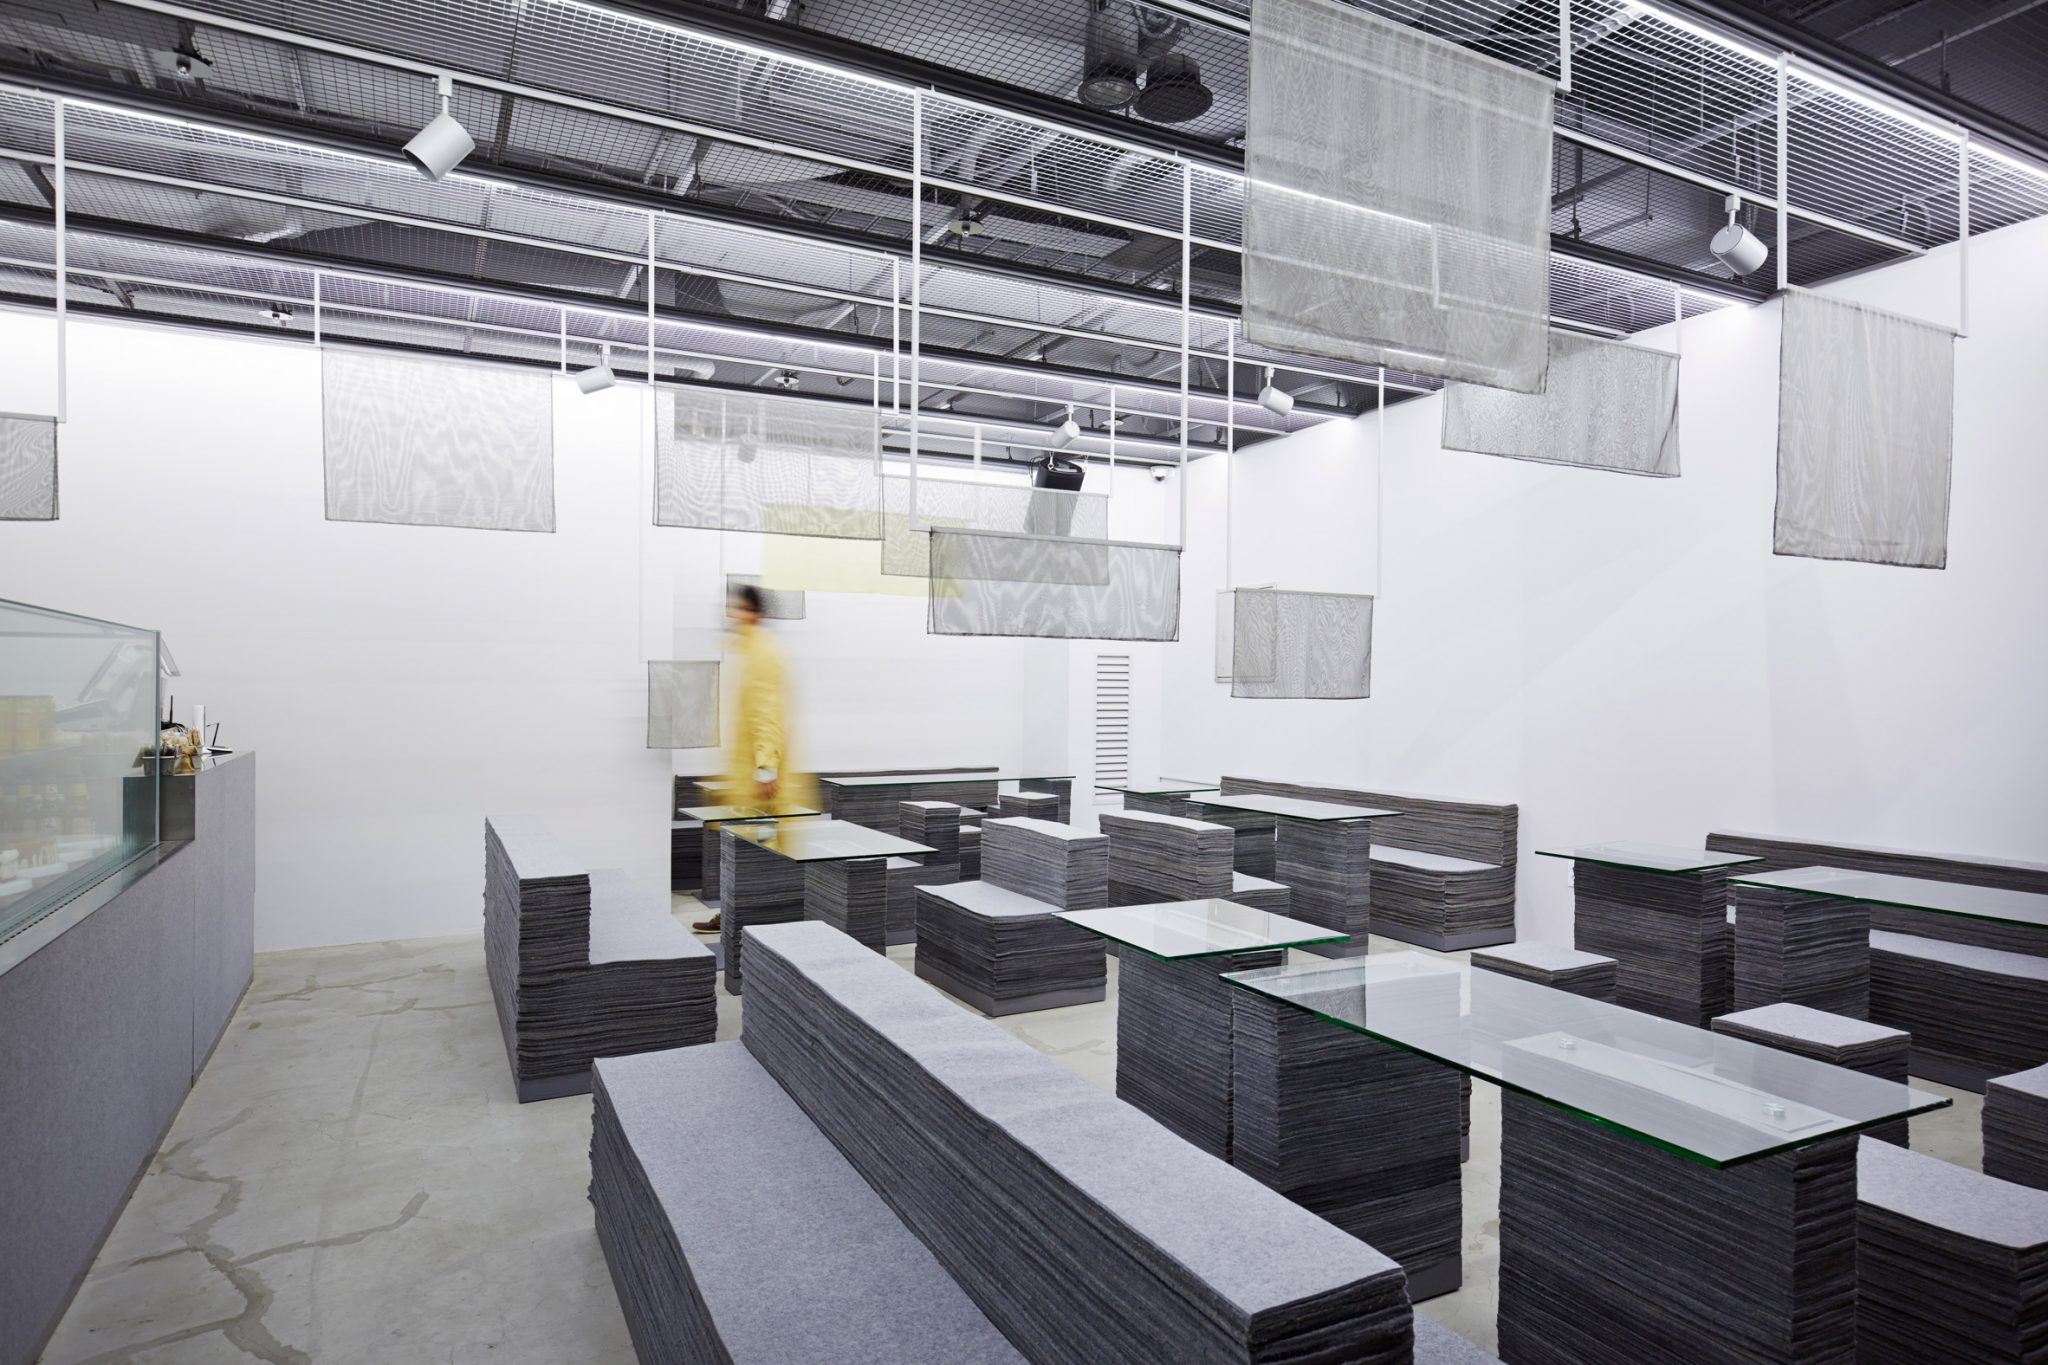 on-ne-sait-jamais-and-felt-series-nameless-architecture-interiors-south-korea_dezeen_2364_col_4